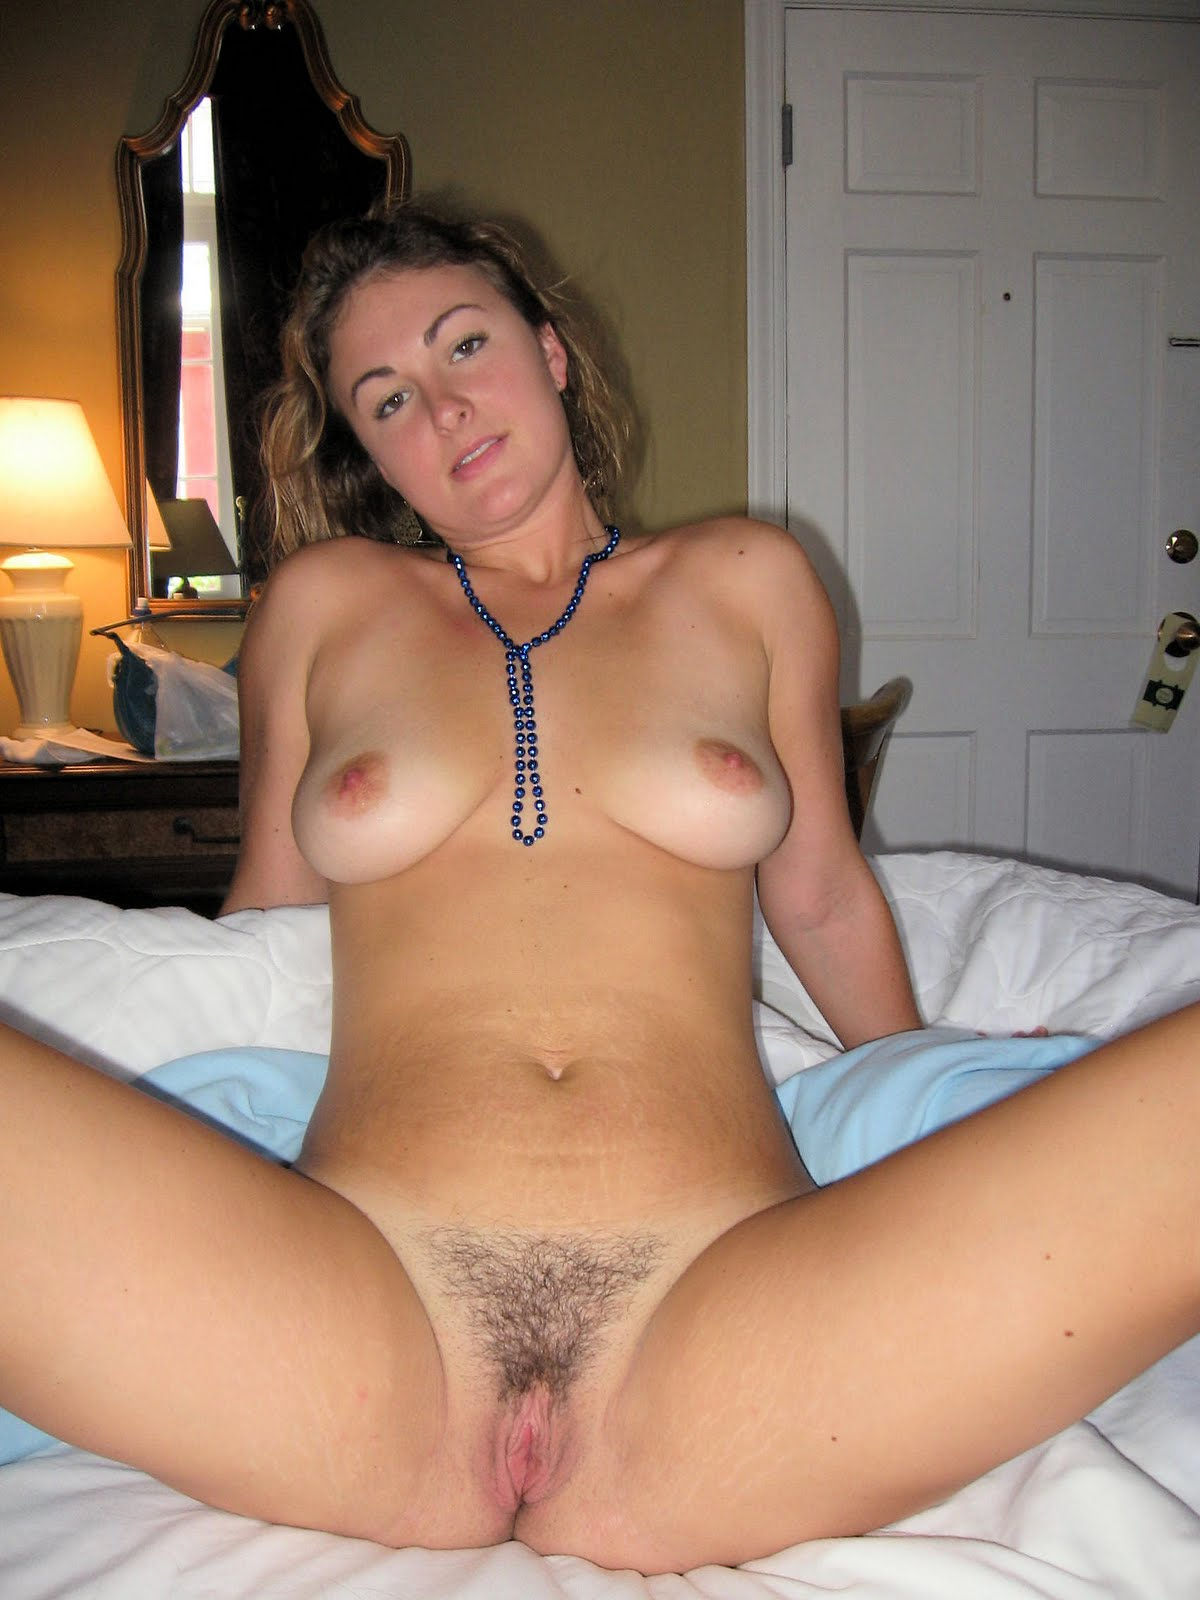 Joanna hot amateur milf